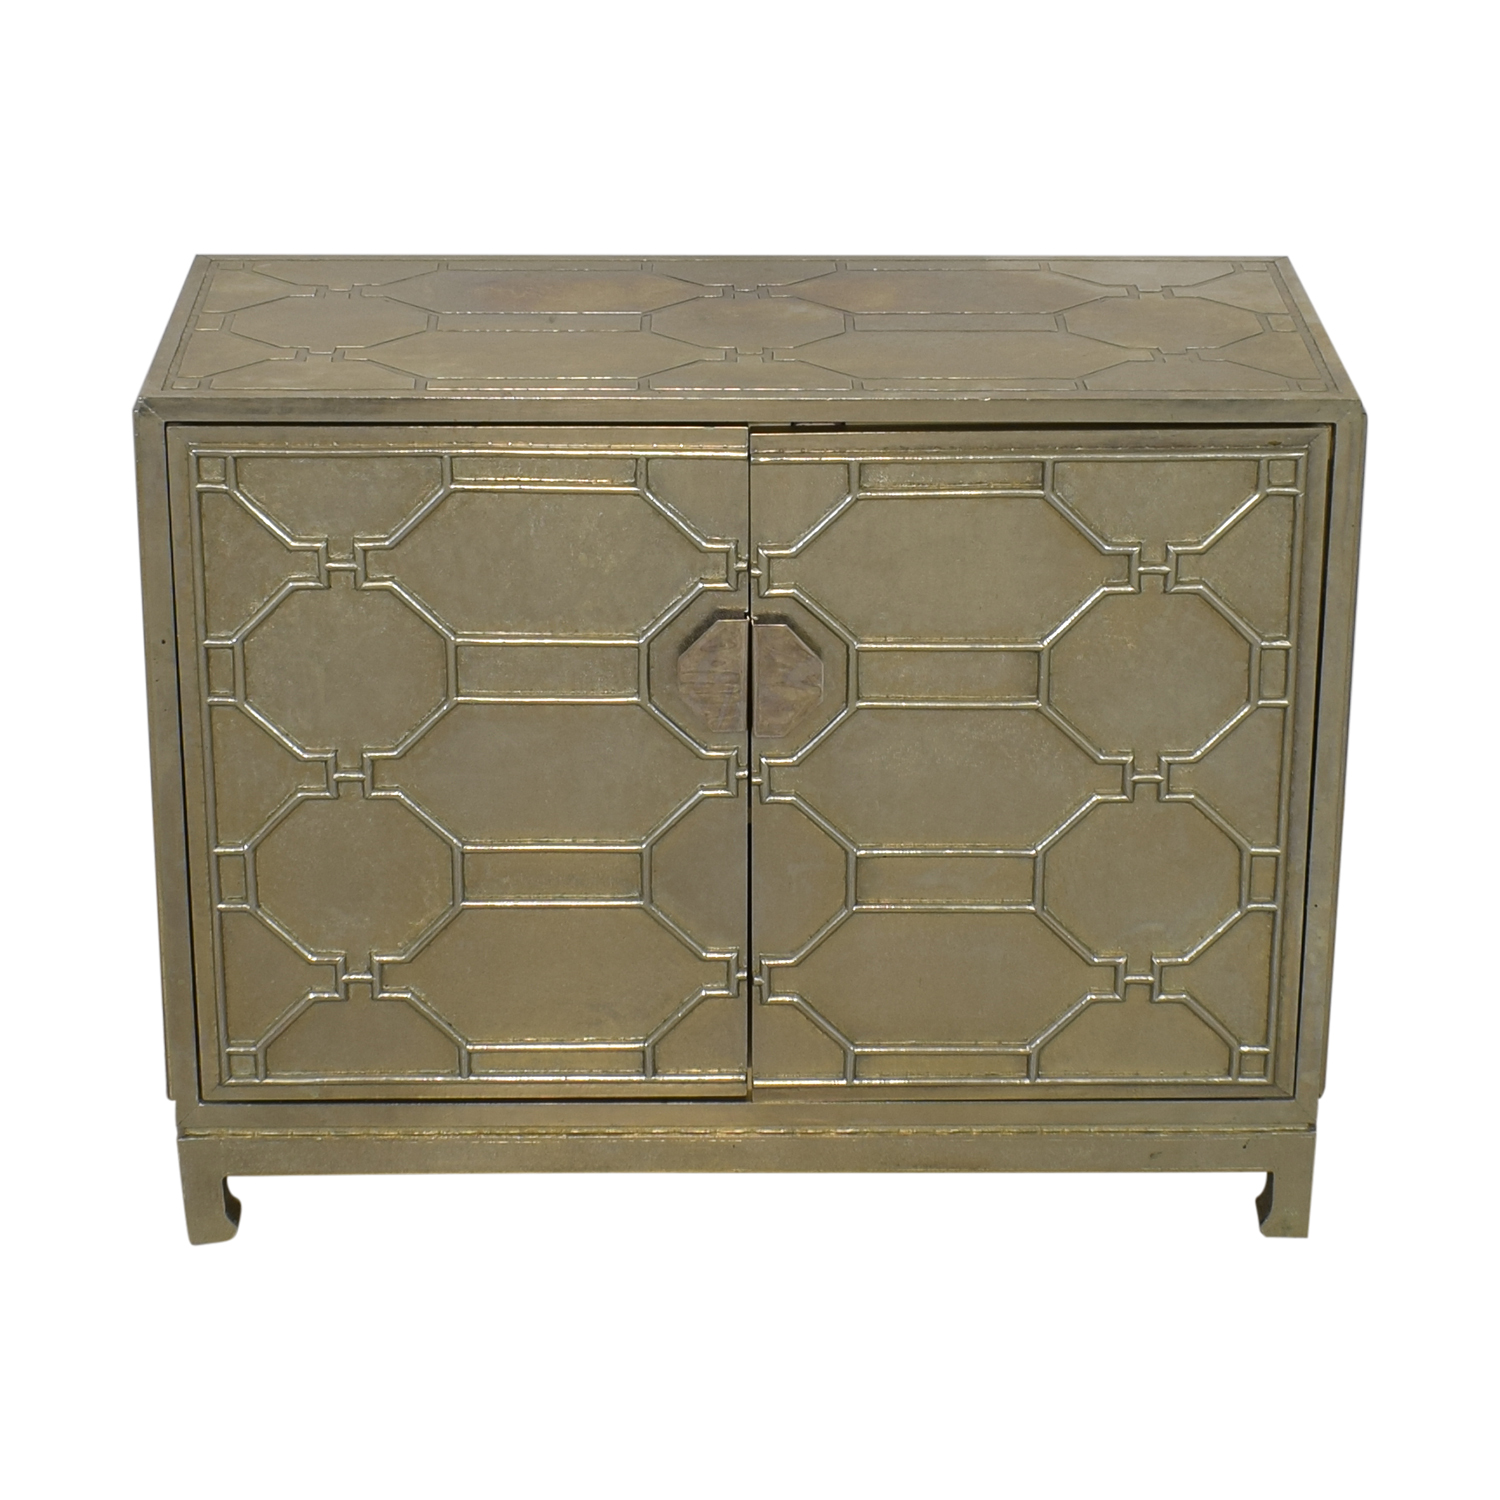 Brownstone Furniture Brownstone Furniture Treviso German Chest Cabinet pa